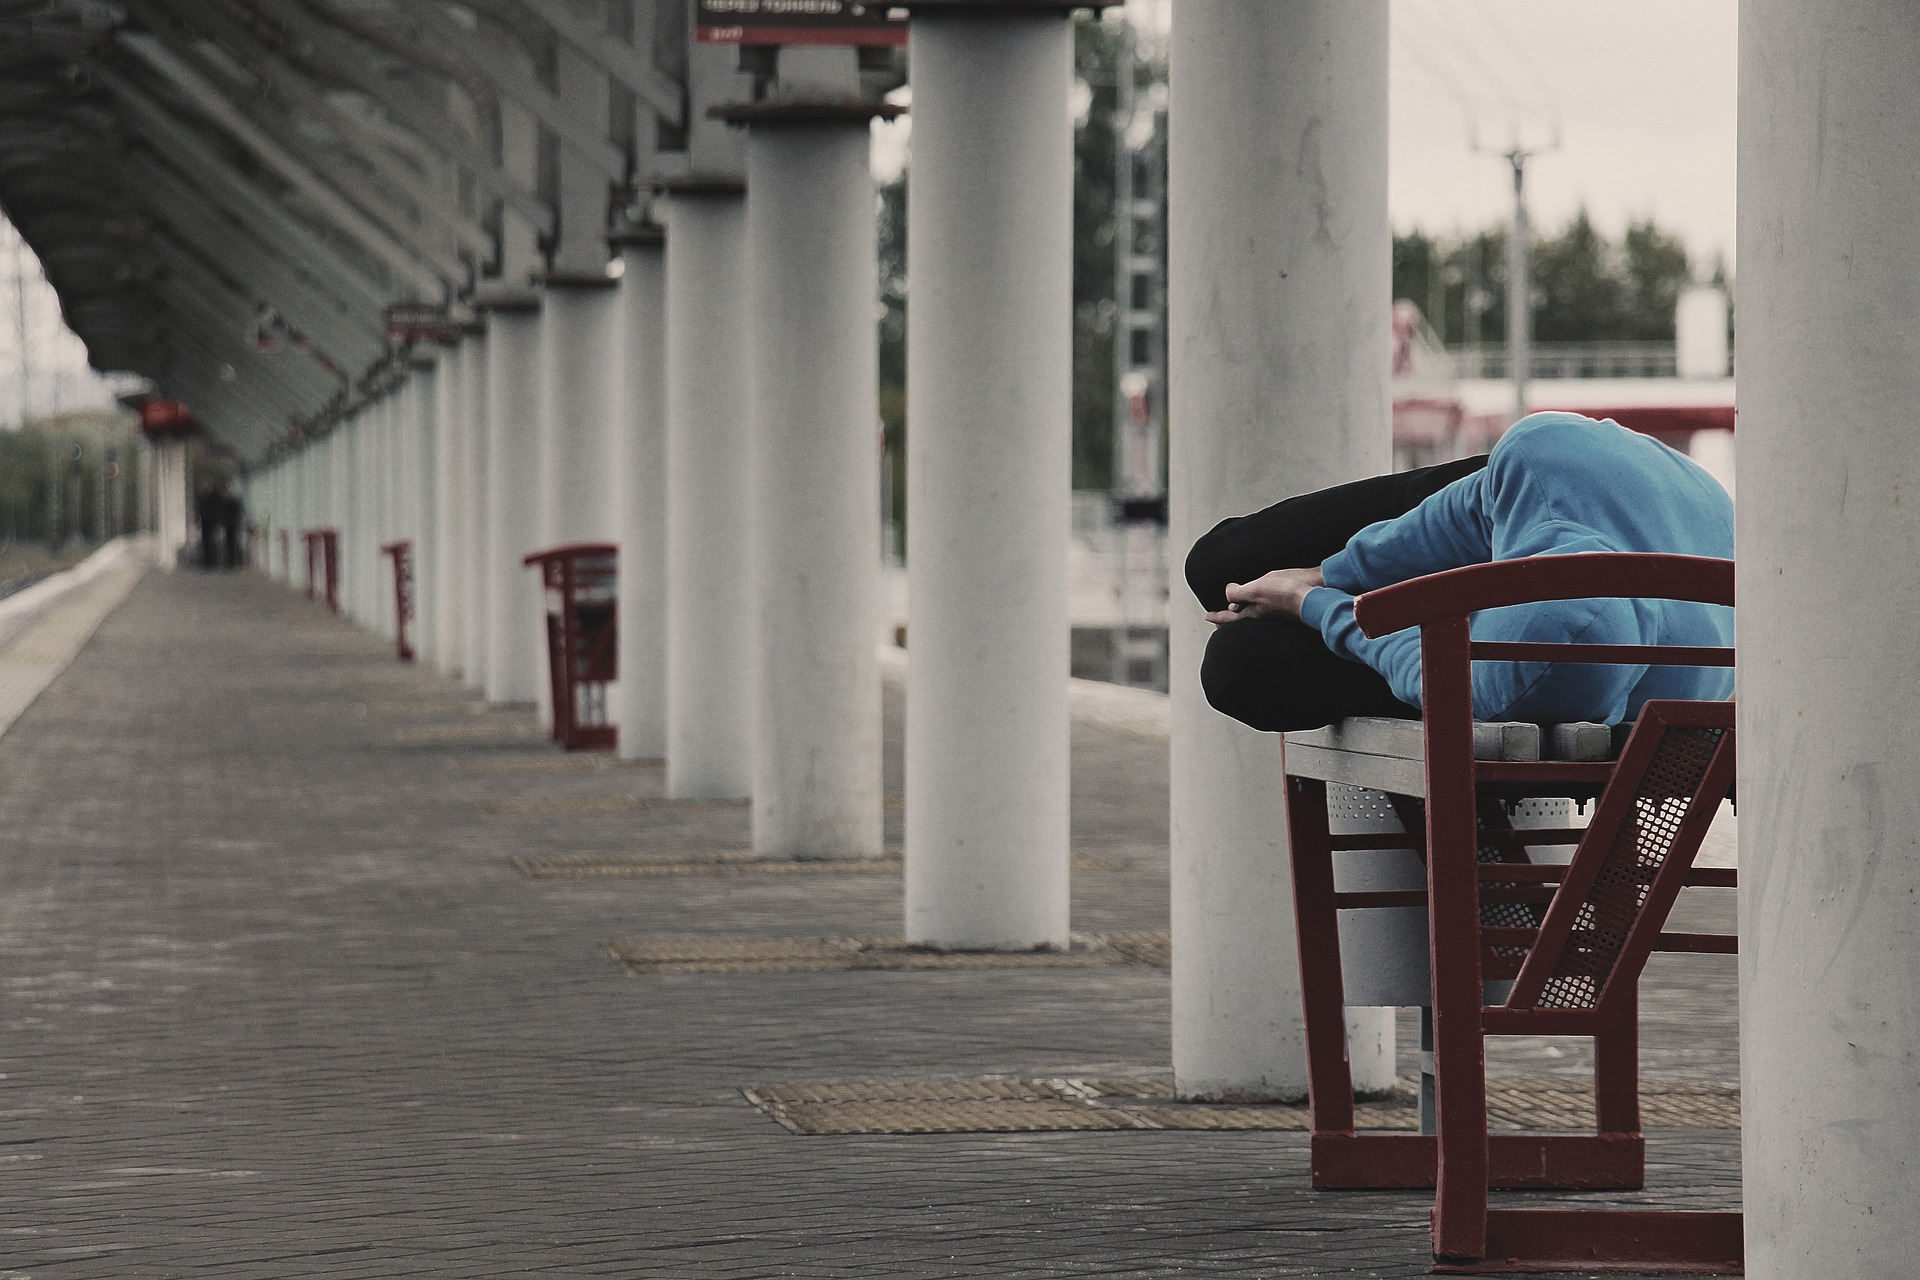 Data Privacy and Data-Driven Solutions to Homelessness